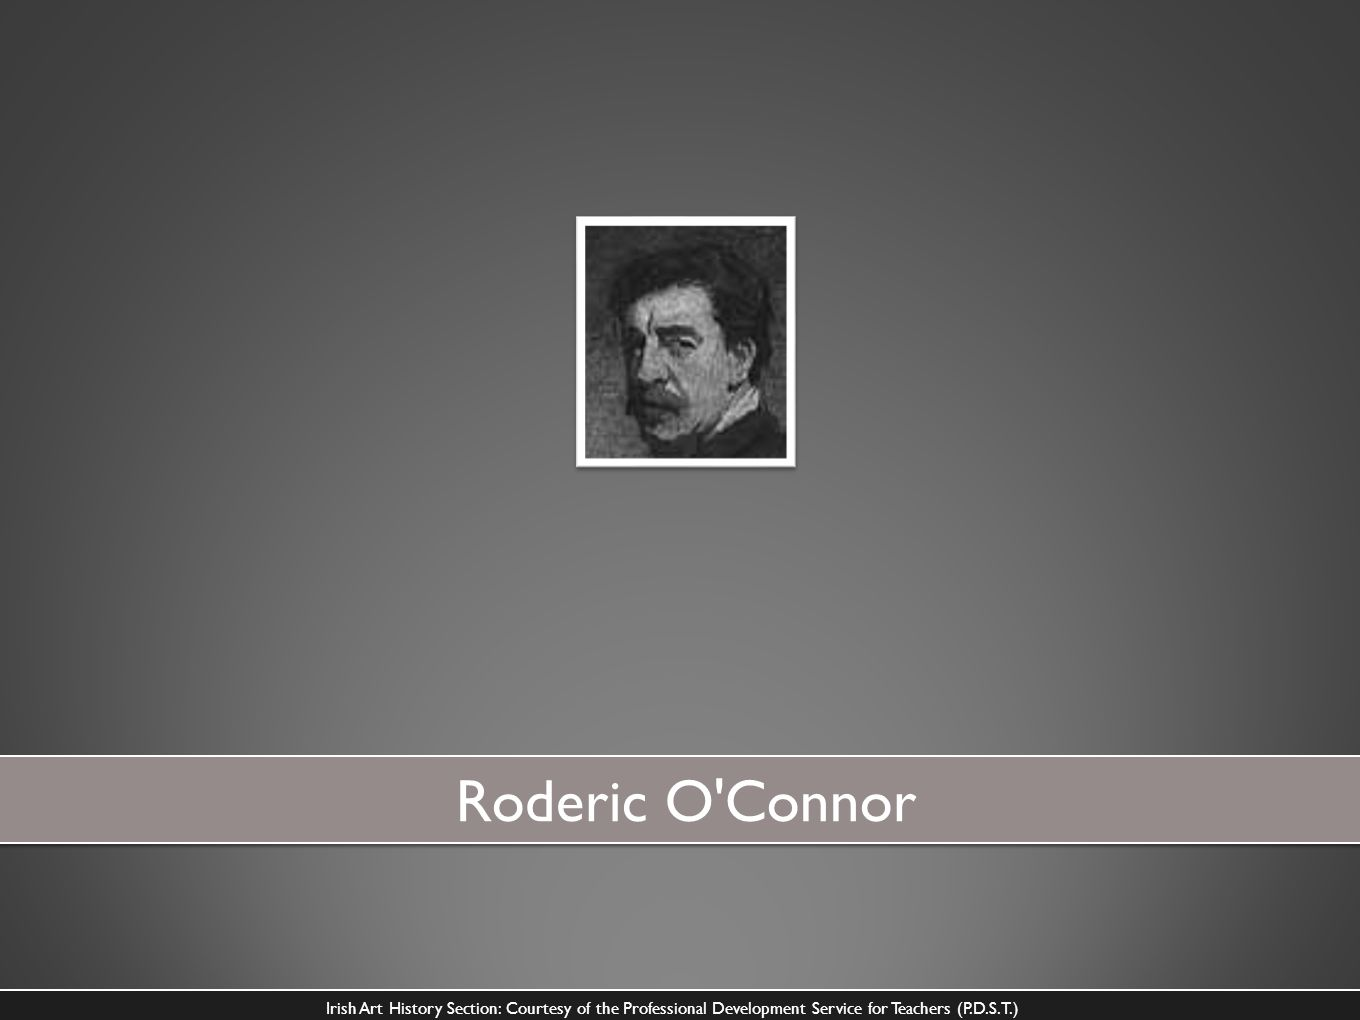 Roderic O Connor: Born in 1860 at Milton in County Roscommon, he entered the Metropolitan School of Art in Dublin in 1879.